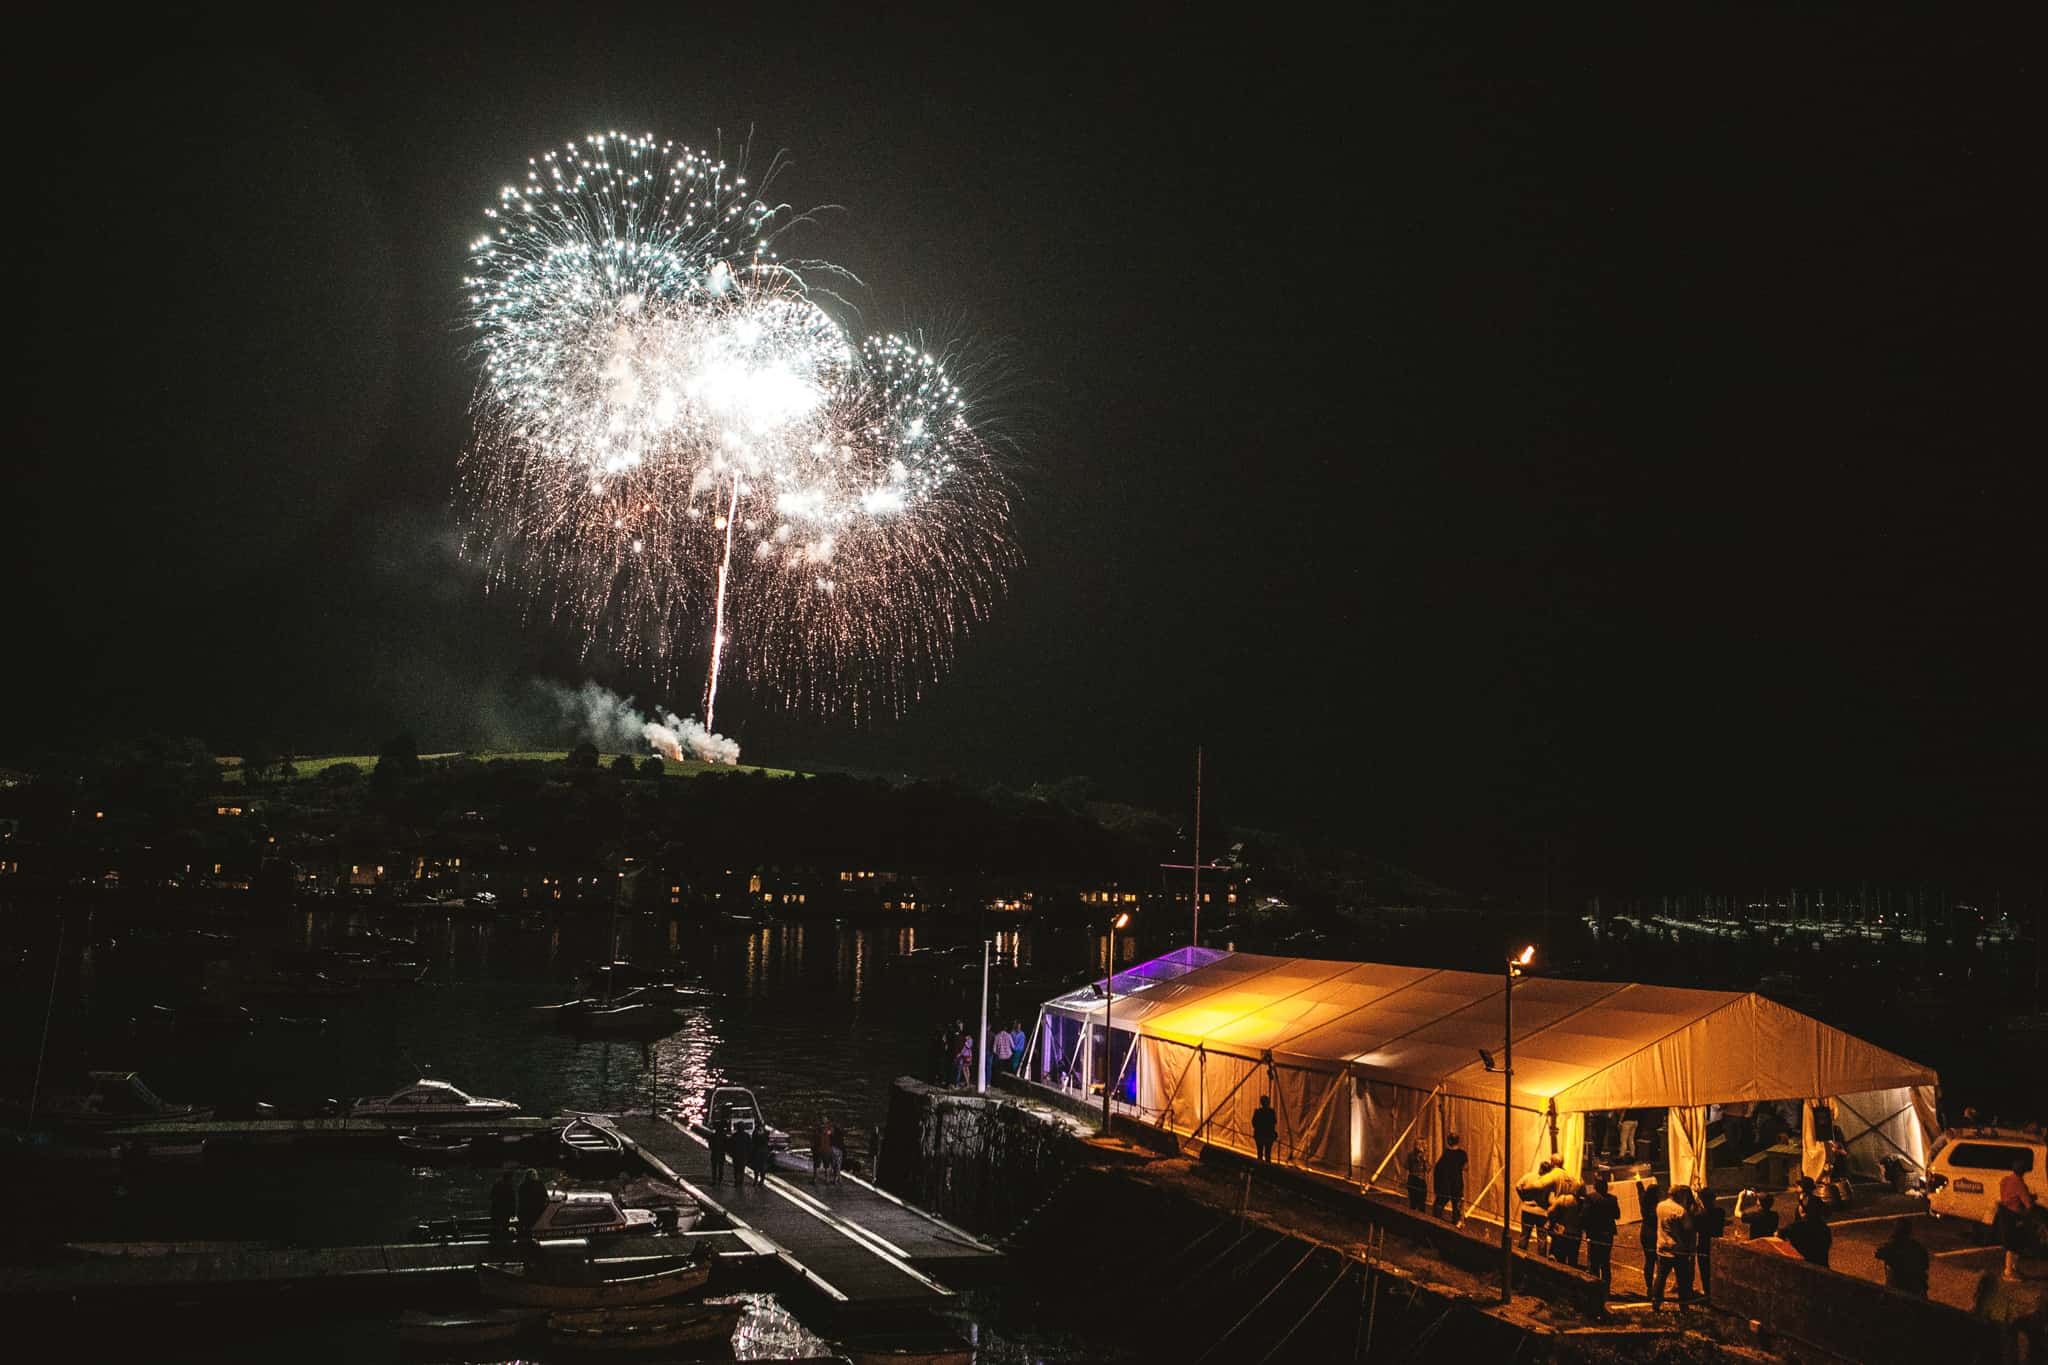 falmouth-week-at-the-working-boat-pub-live-music-events-falmouth-cornwall (91 of 114)